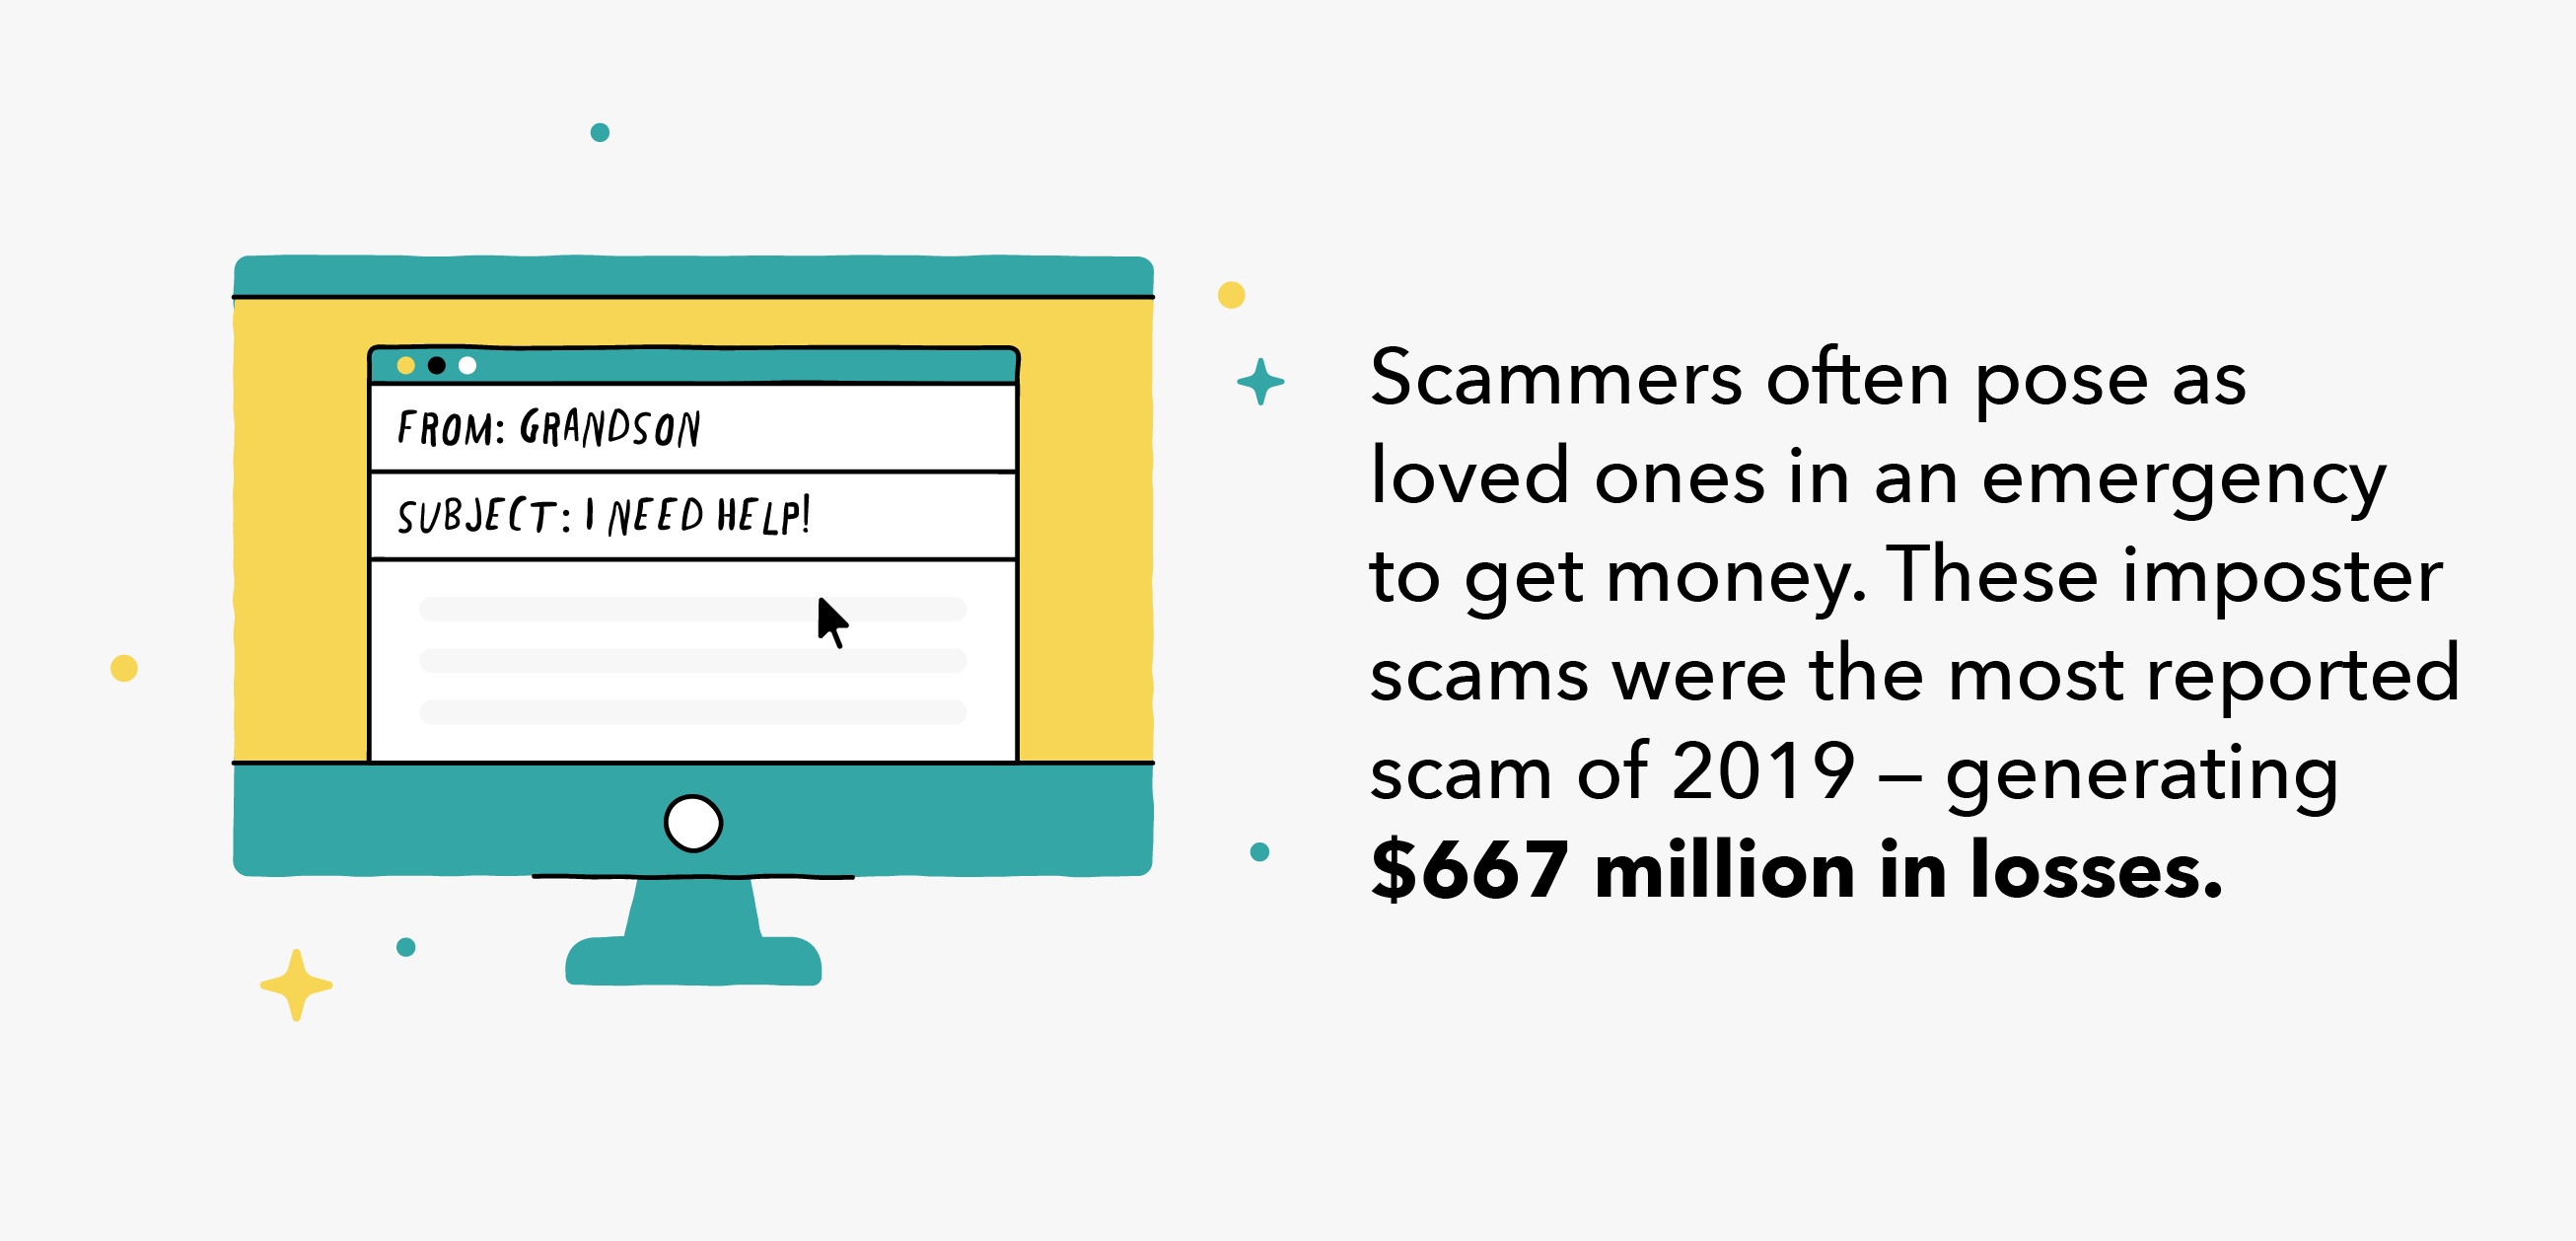 scammers often target loved ones, scamming $667 million from Americans in 2019